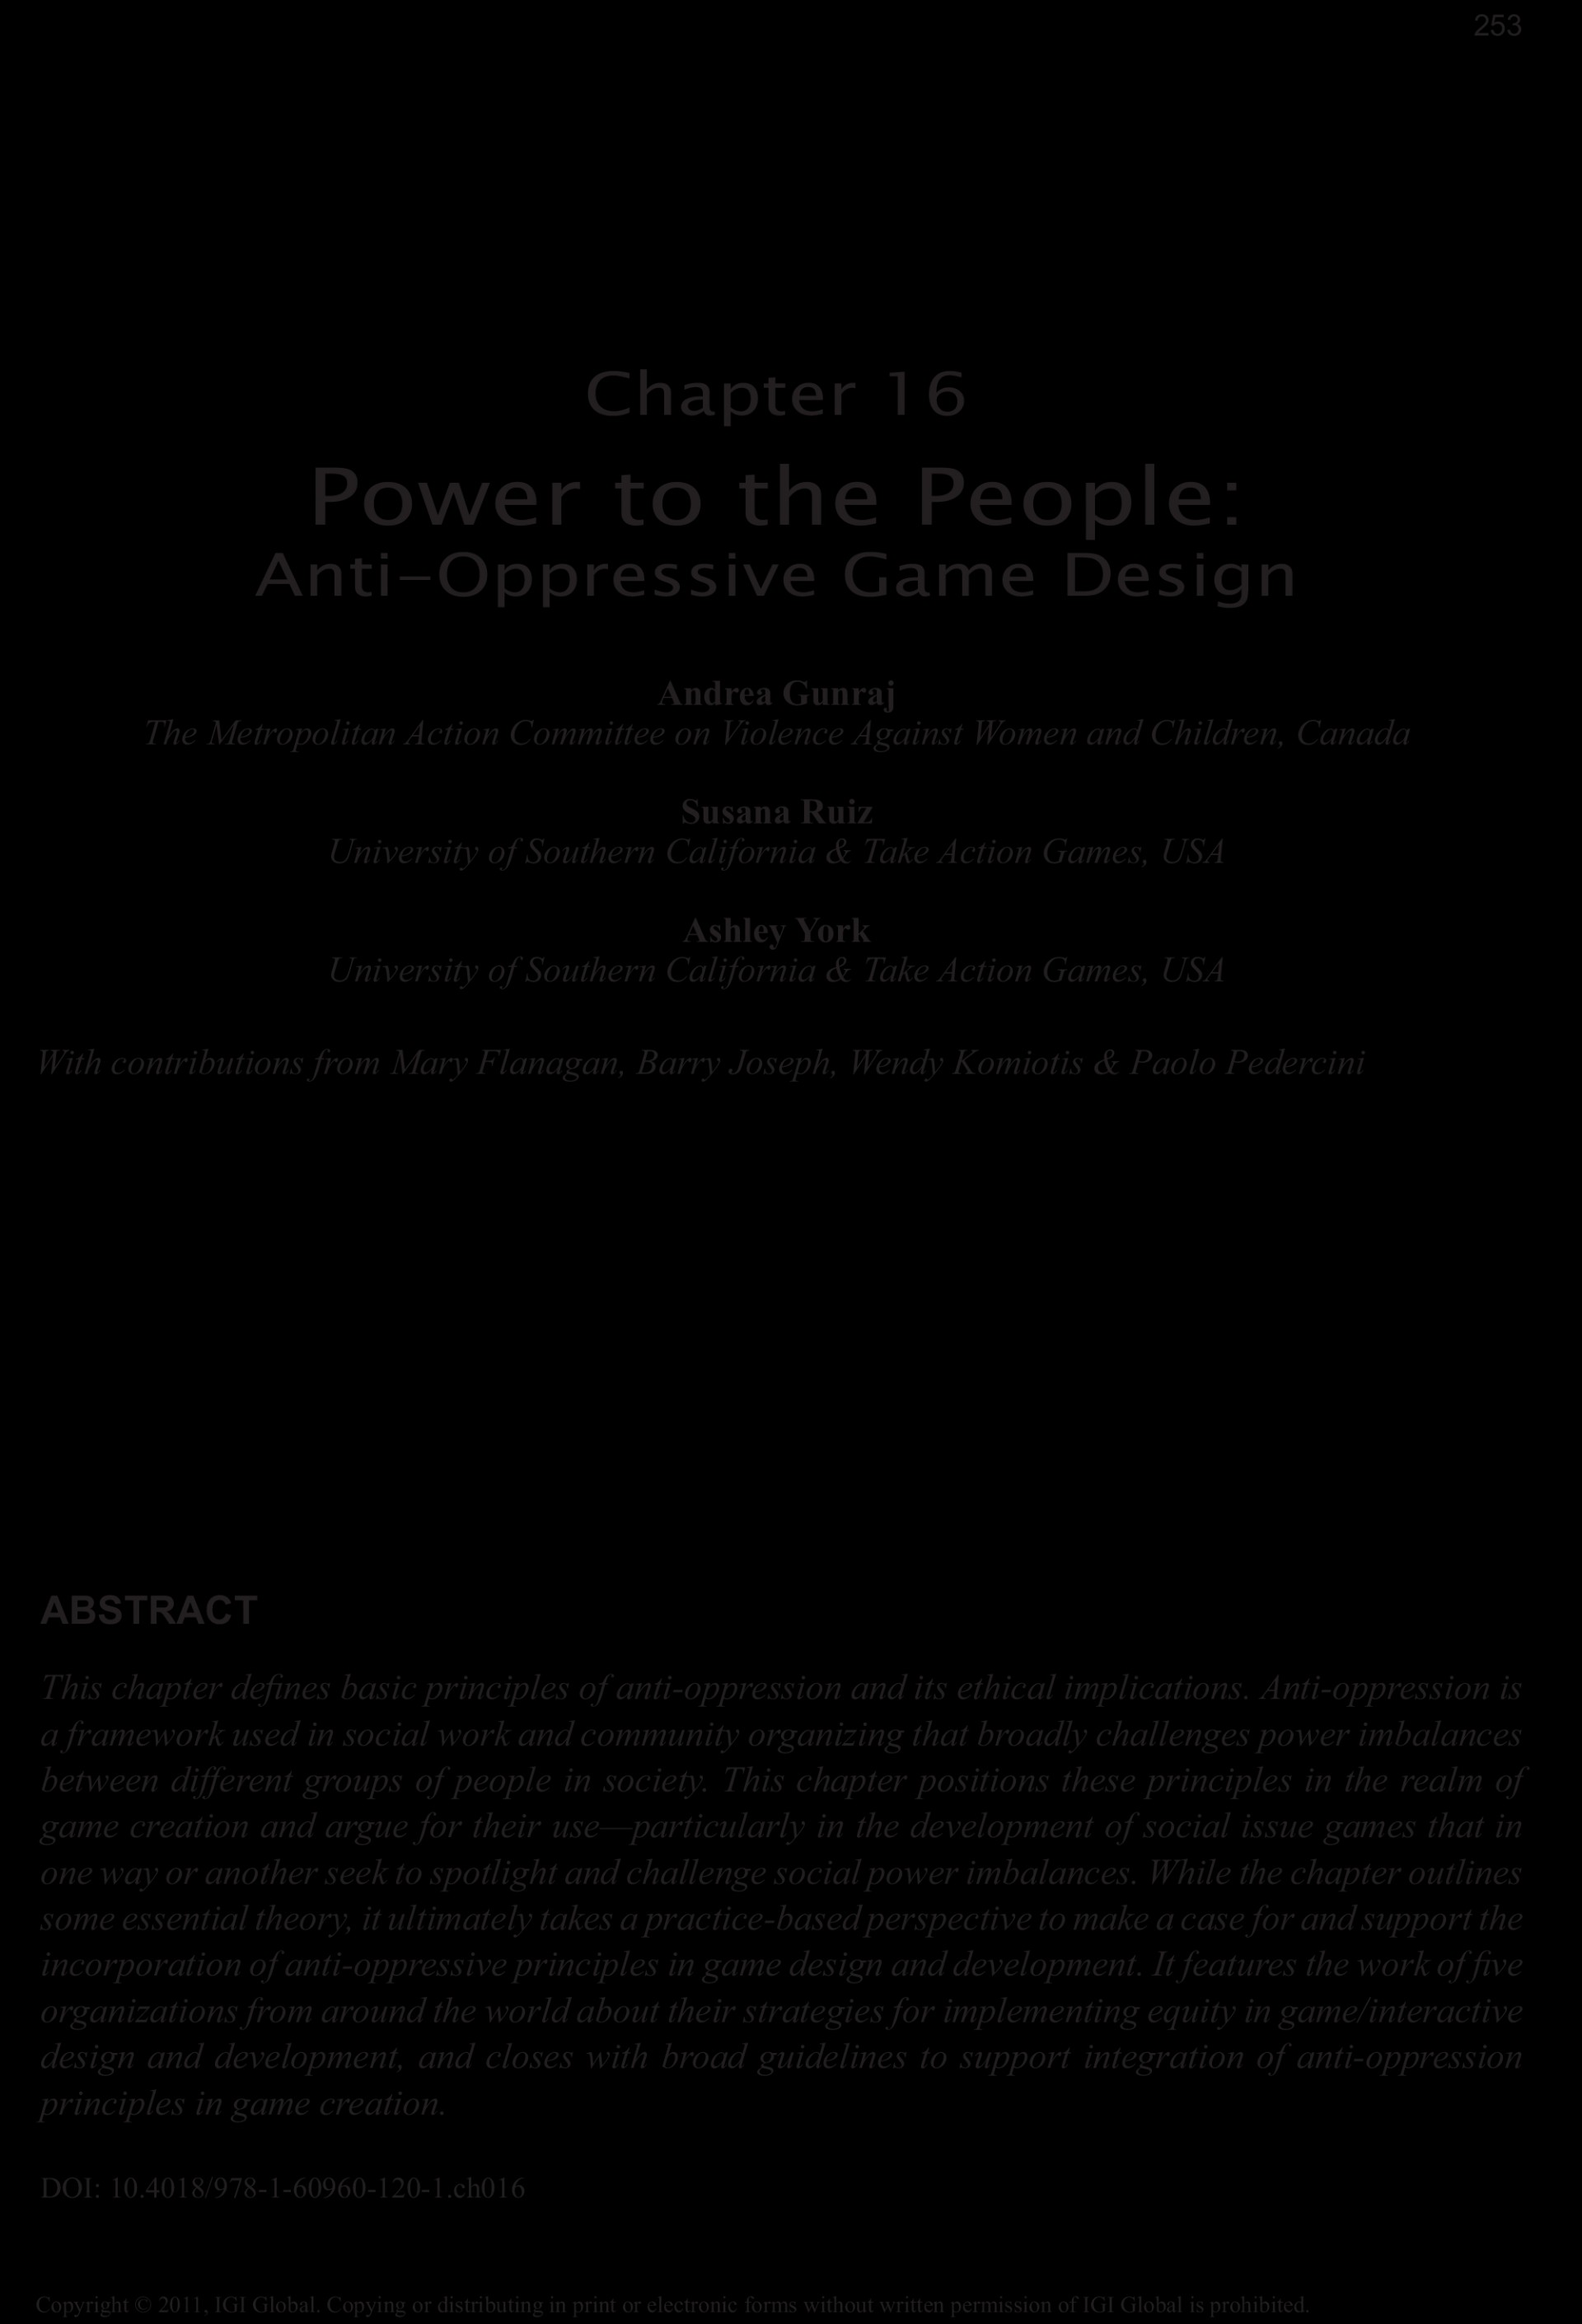 015 Power To The People Short Essay On Famine Marvelous 1920